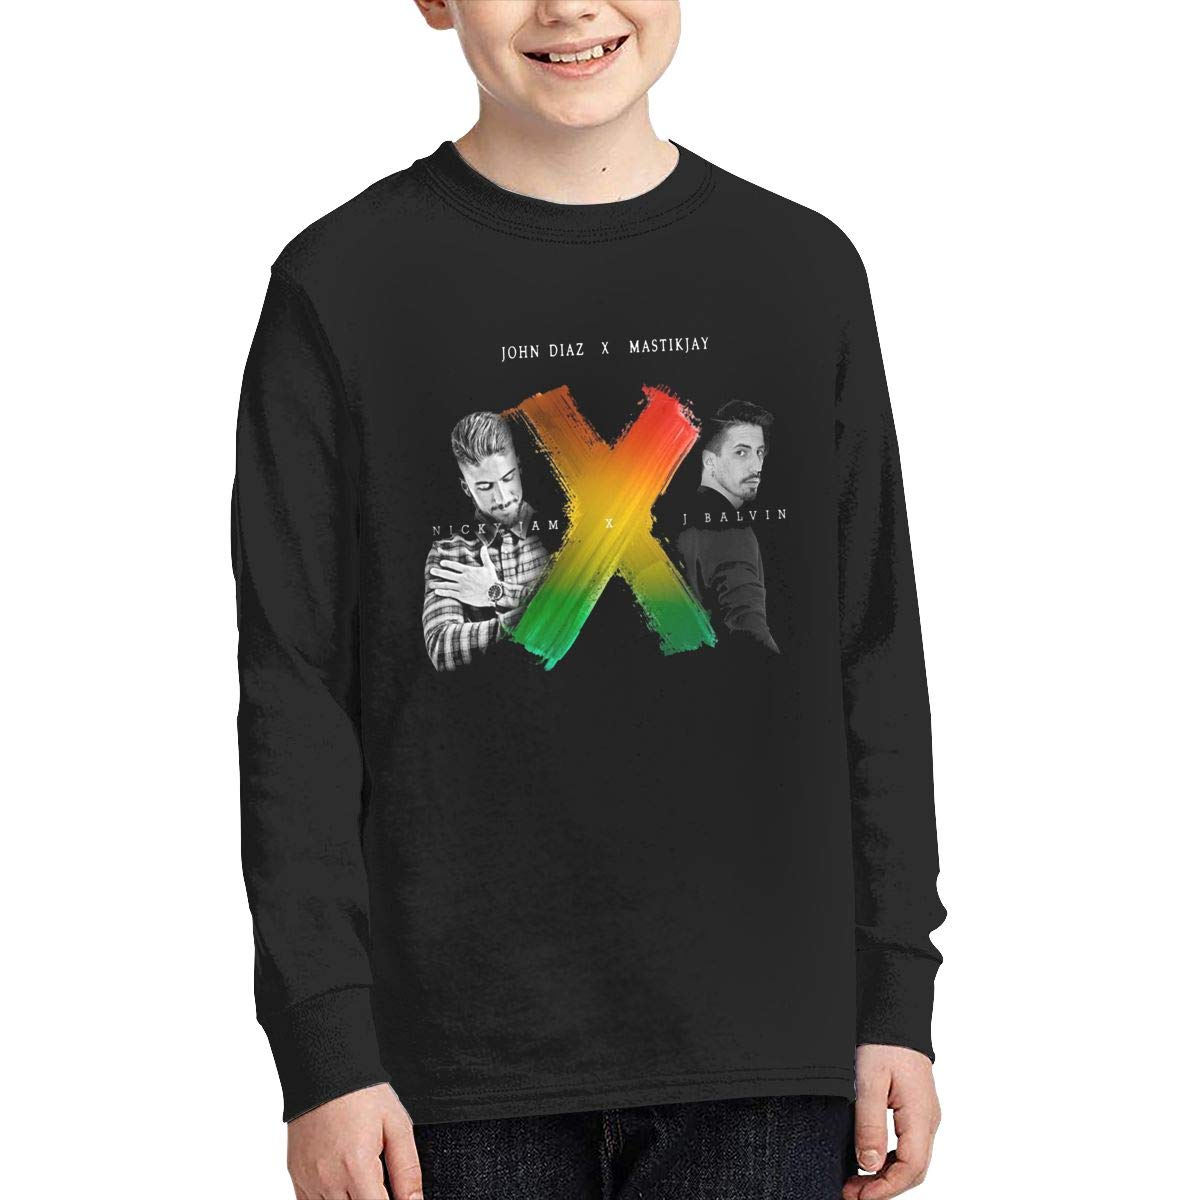 Youth J-Balvin Long Sleeves Shirt Boys Girls